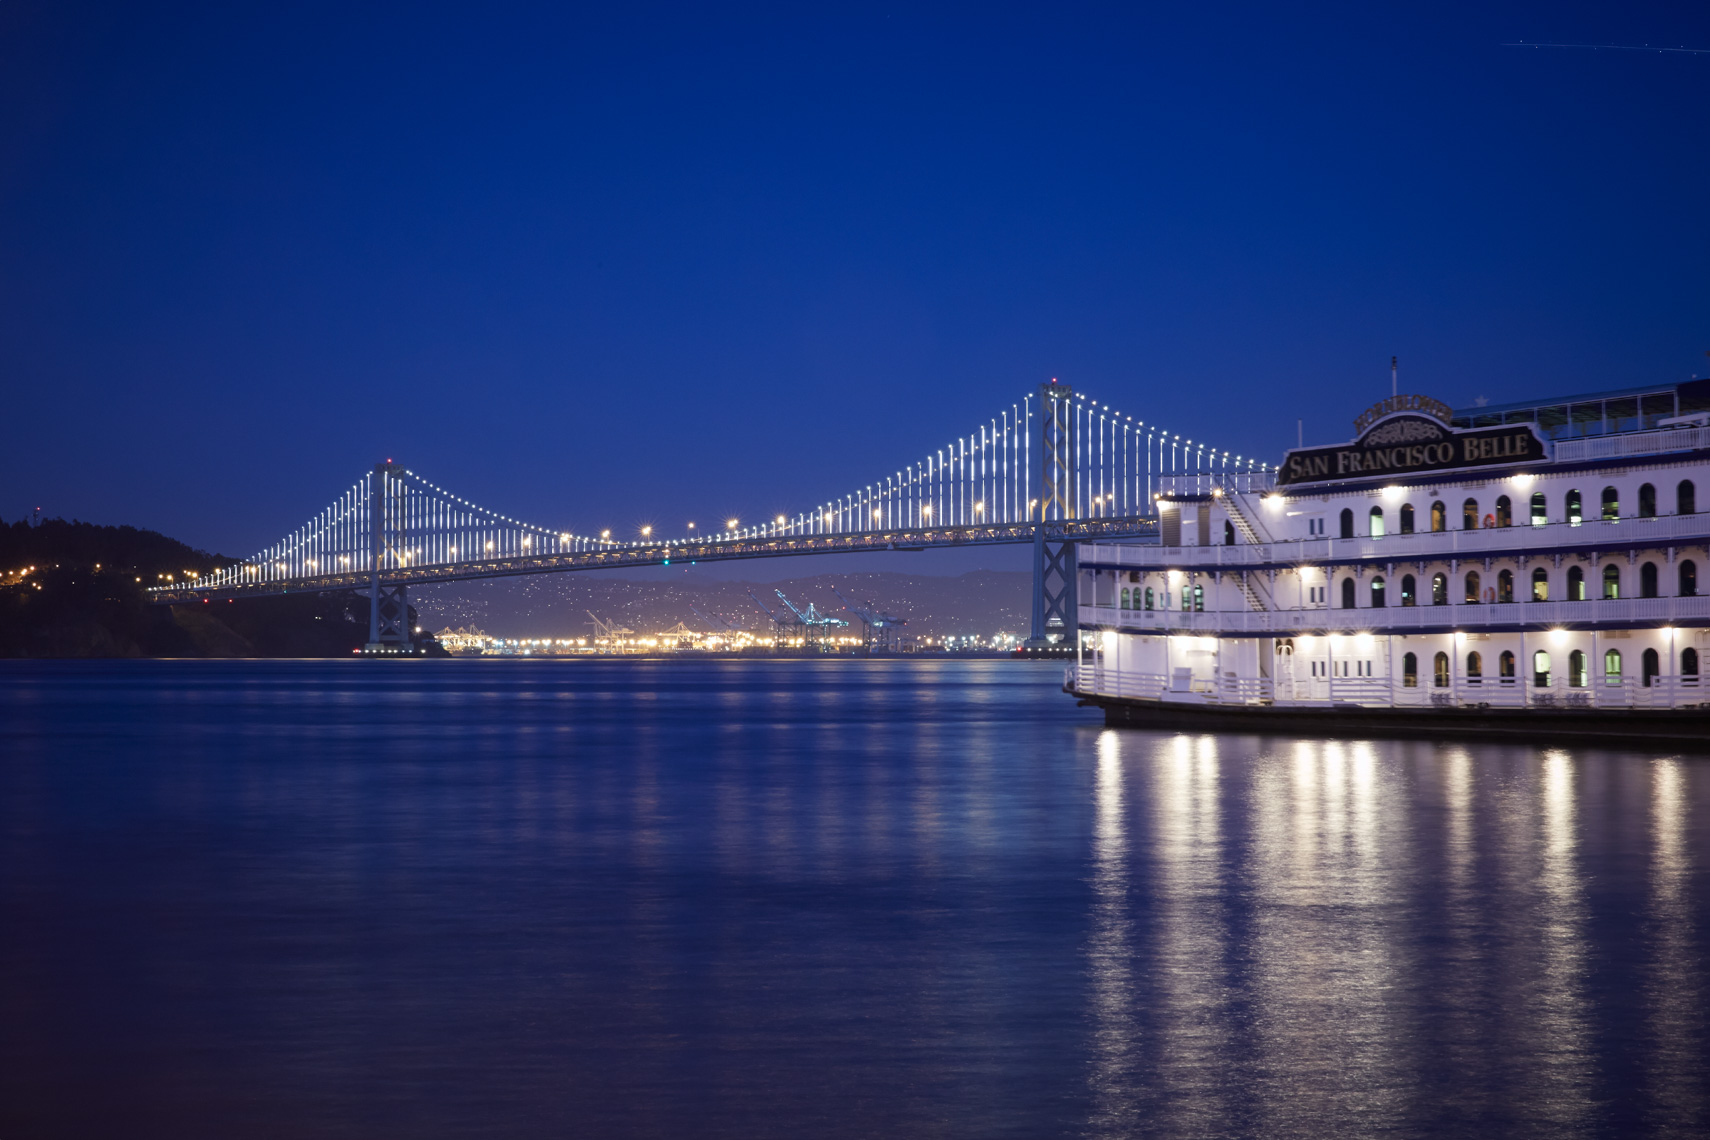 Oakland Bay Bridge viewed from San Francisco city water front at dusk with lights on bridge and ferry boat  San Francisco architectural photographer